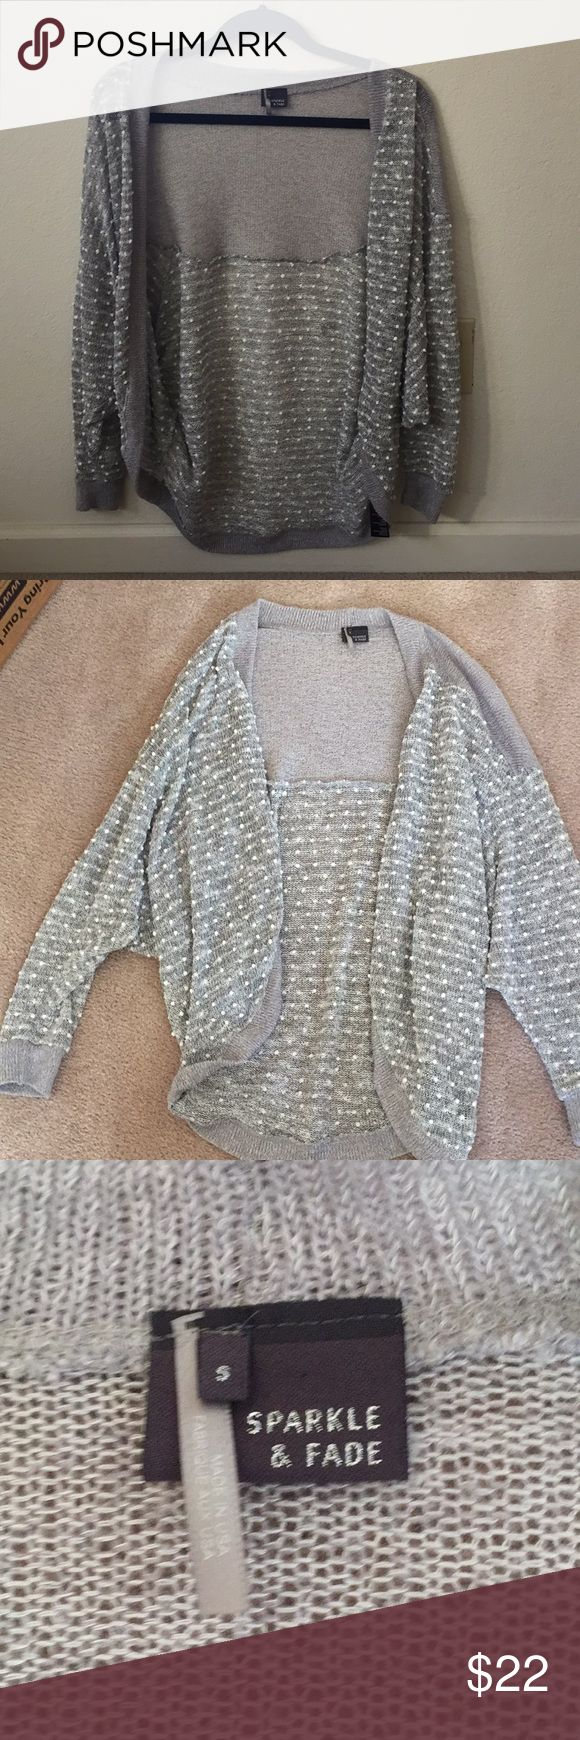 Sparkle and fade dotted cardigan! Urban outfitters brand sparkle and fade polka dotted cardigan! Worn only a few times and like new. Only one small unraveling of the fabric on the inside, but not noticeable and not affected the outside of the cardigan Urban Outfitters Sweaters Cardigans